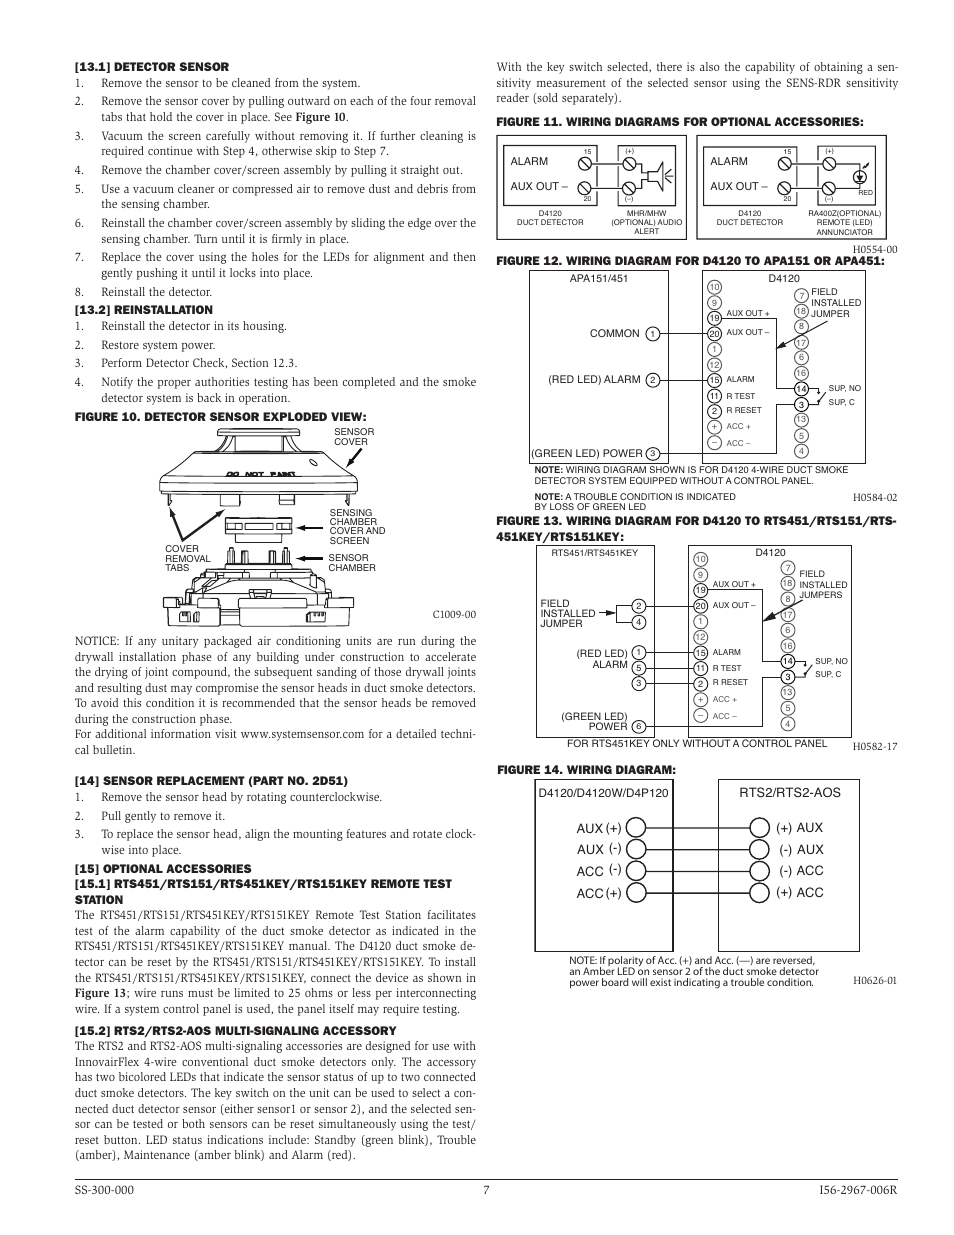 System Sensor Wiring Diagram Online Motion Diagrams D4120 D4p120 And D4s User Manual Page 7 8 Multiple Lights